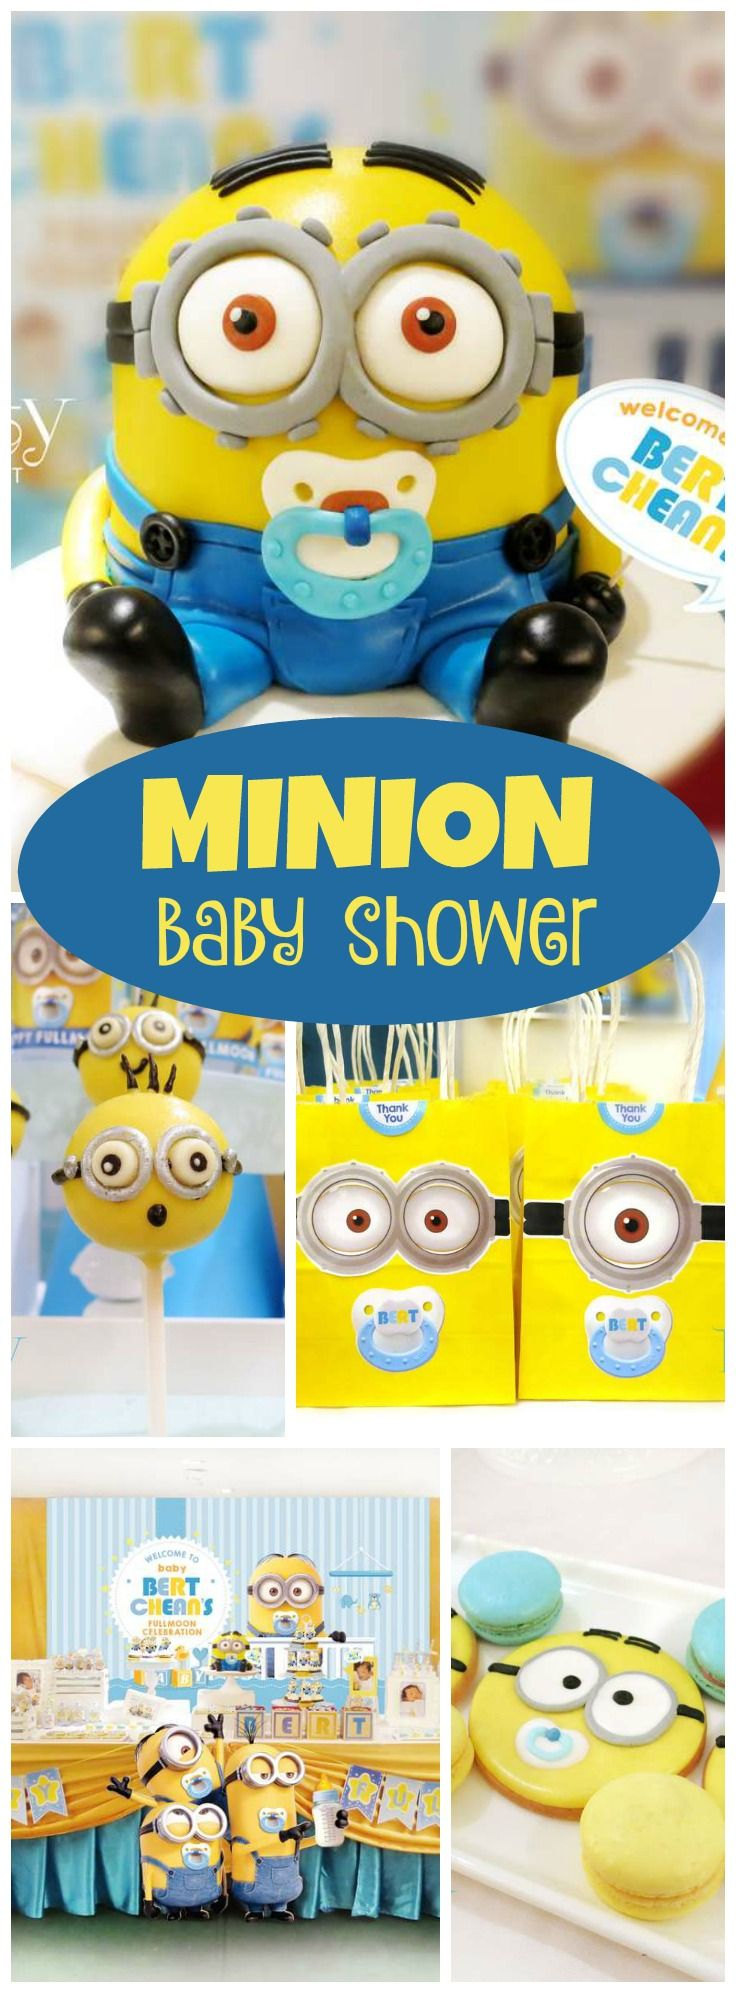 Cartoon Boy Baby Shower Themes : cartoon, shower, themes, Despicable, Minions, Shower,